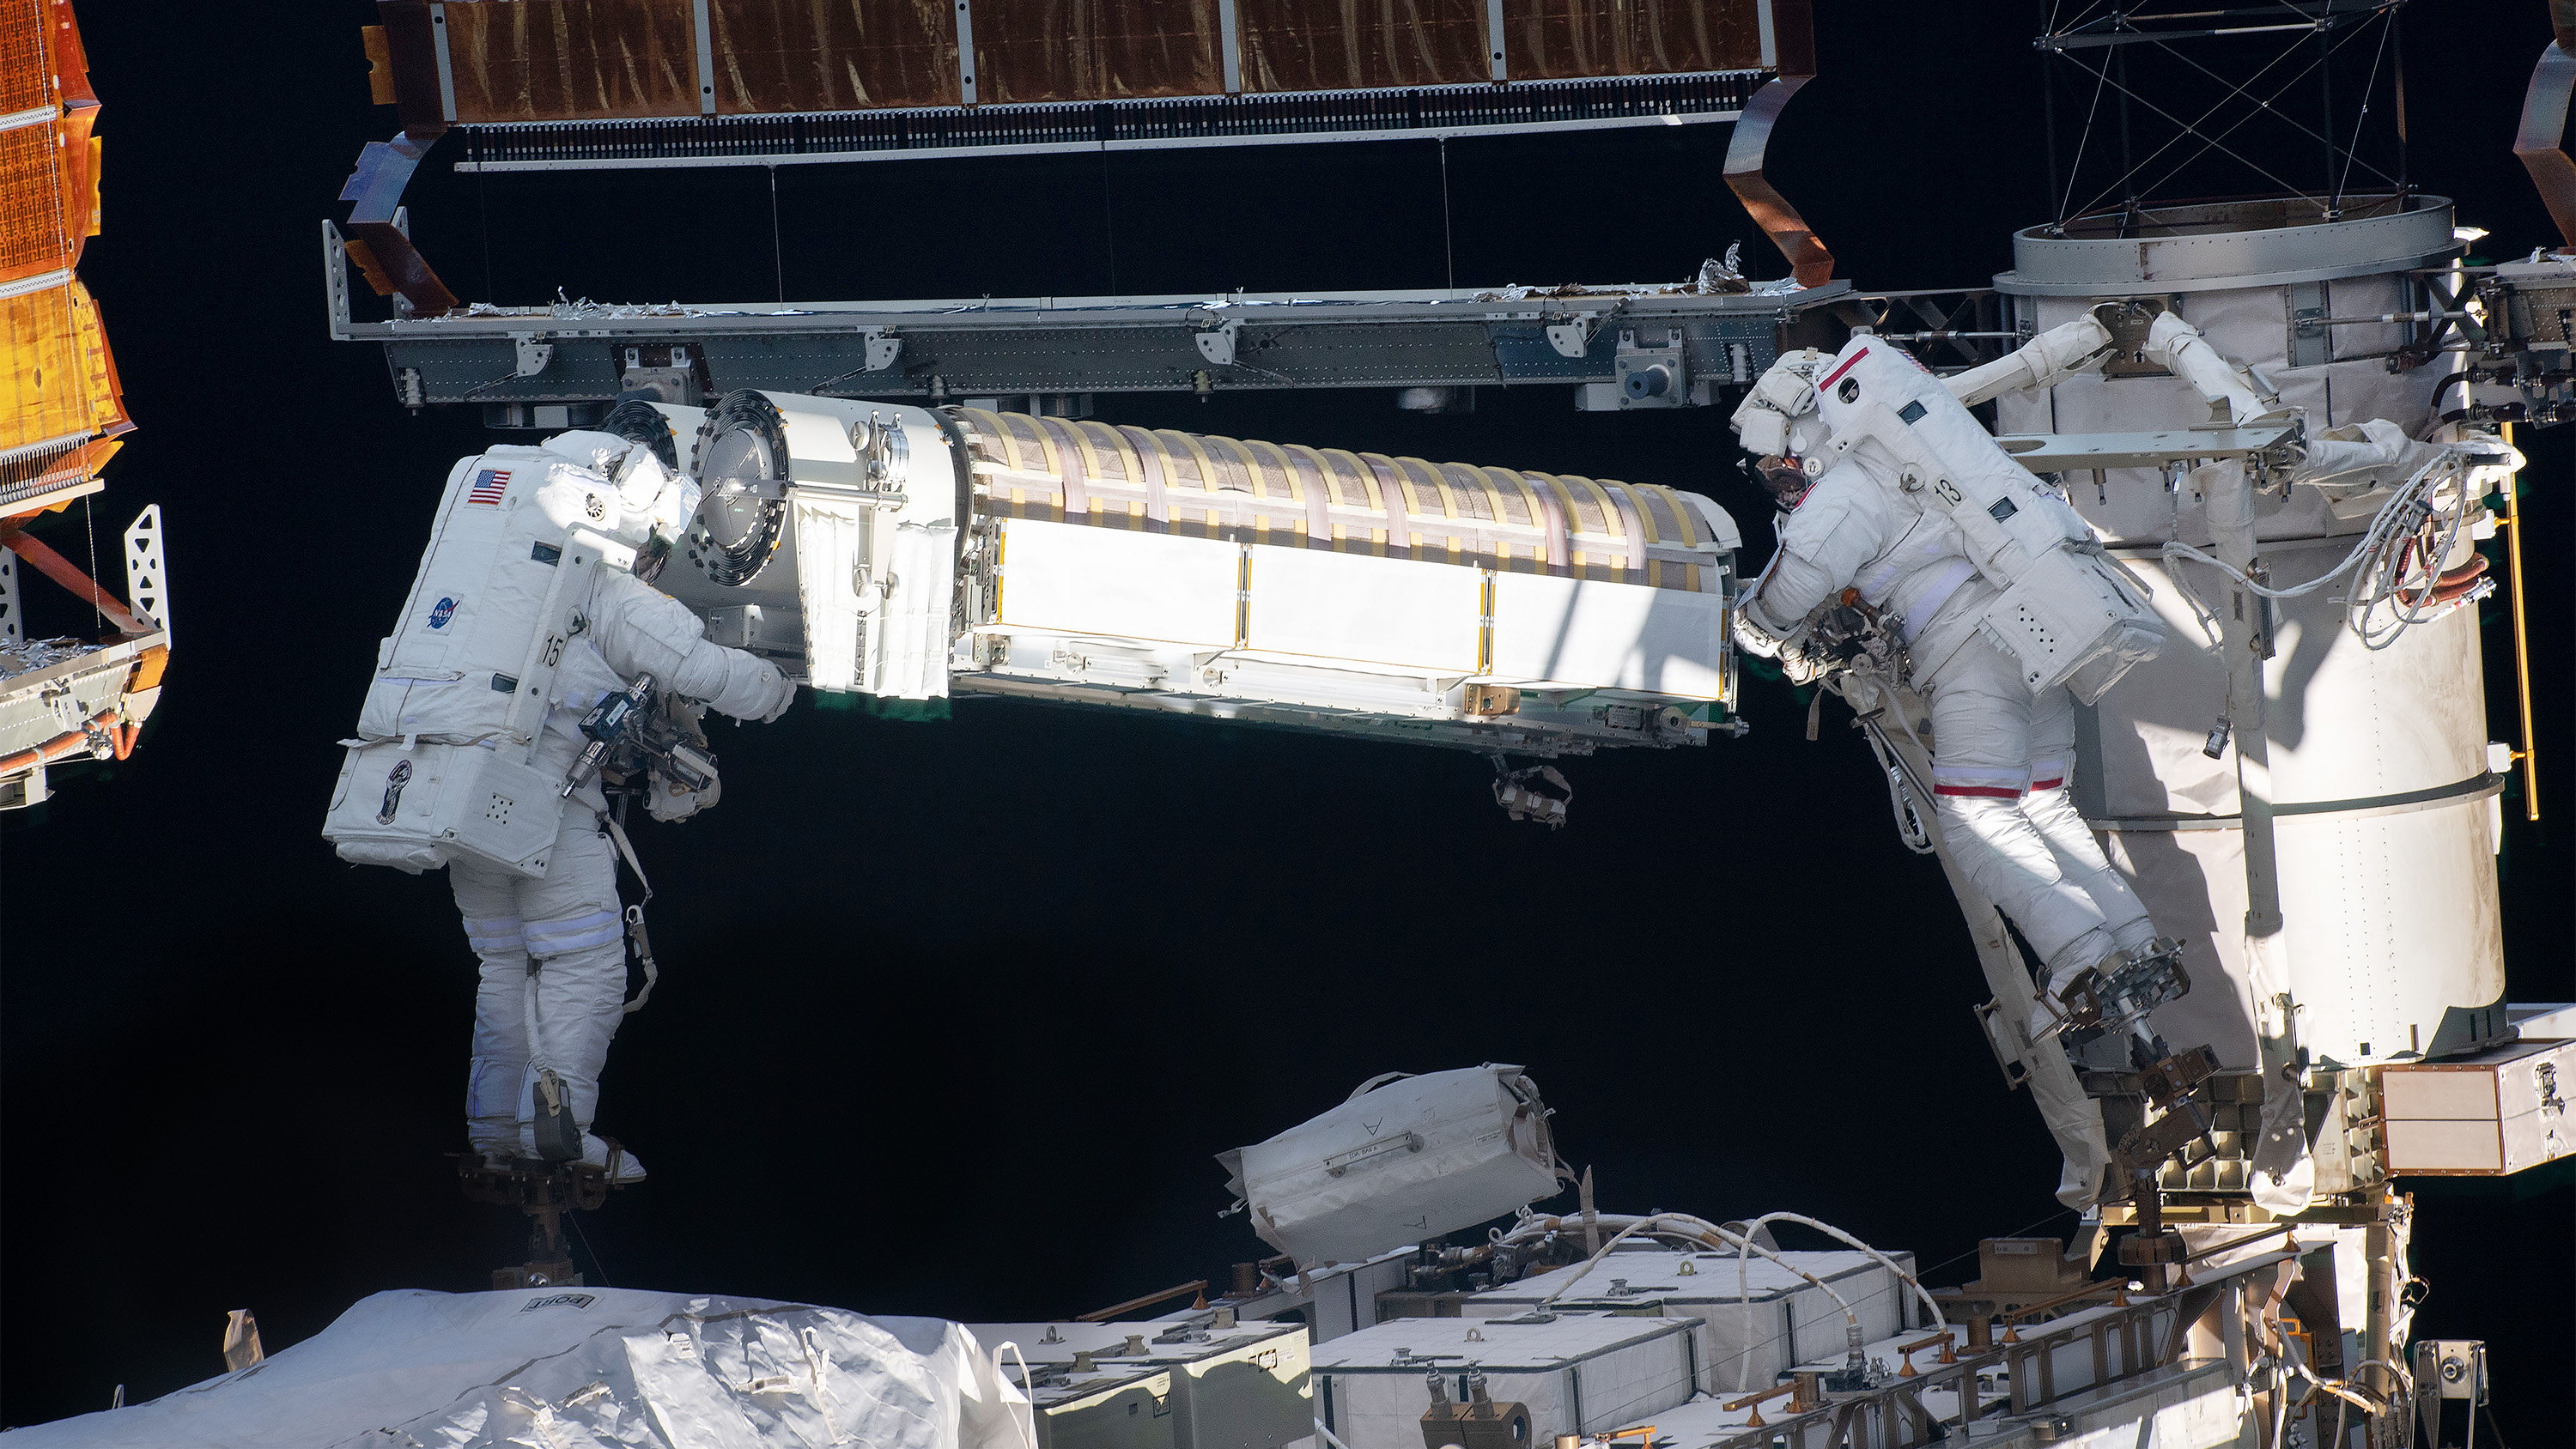 NASA and ESA astronauts work together to fix solar panels